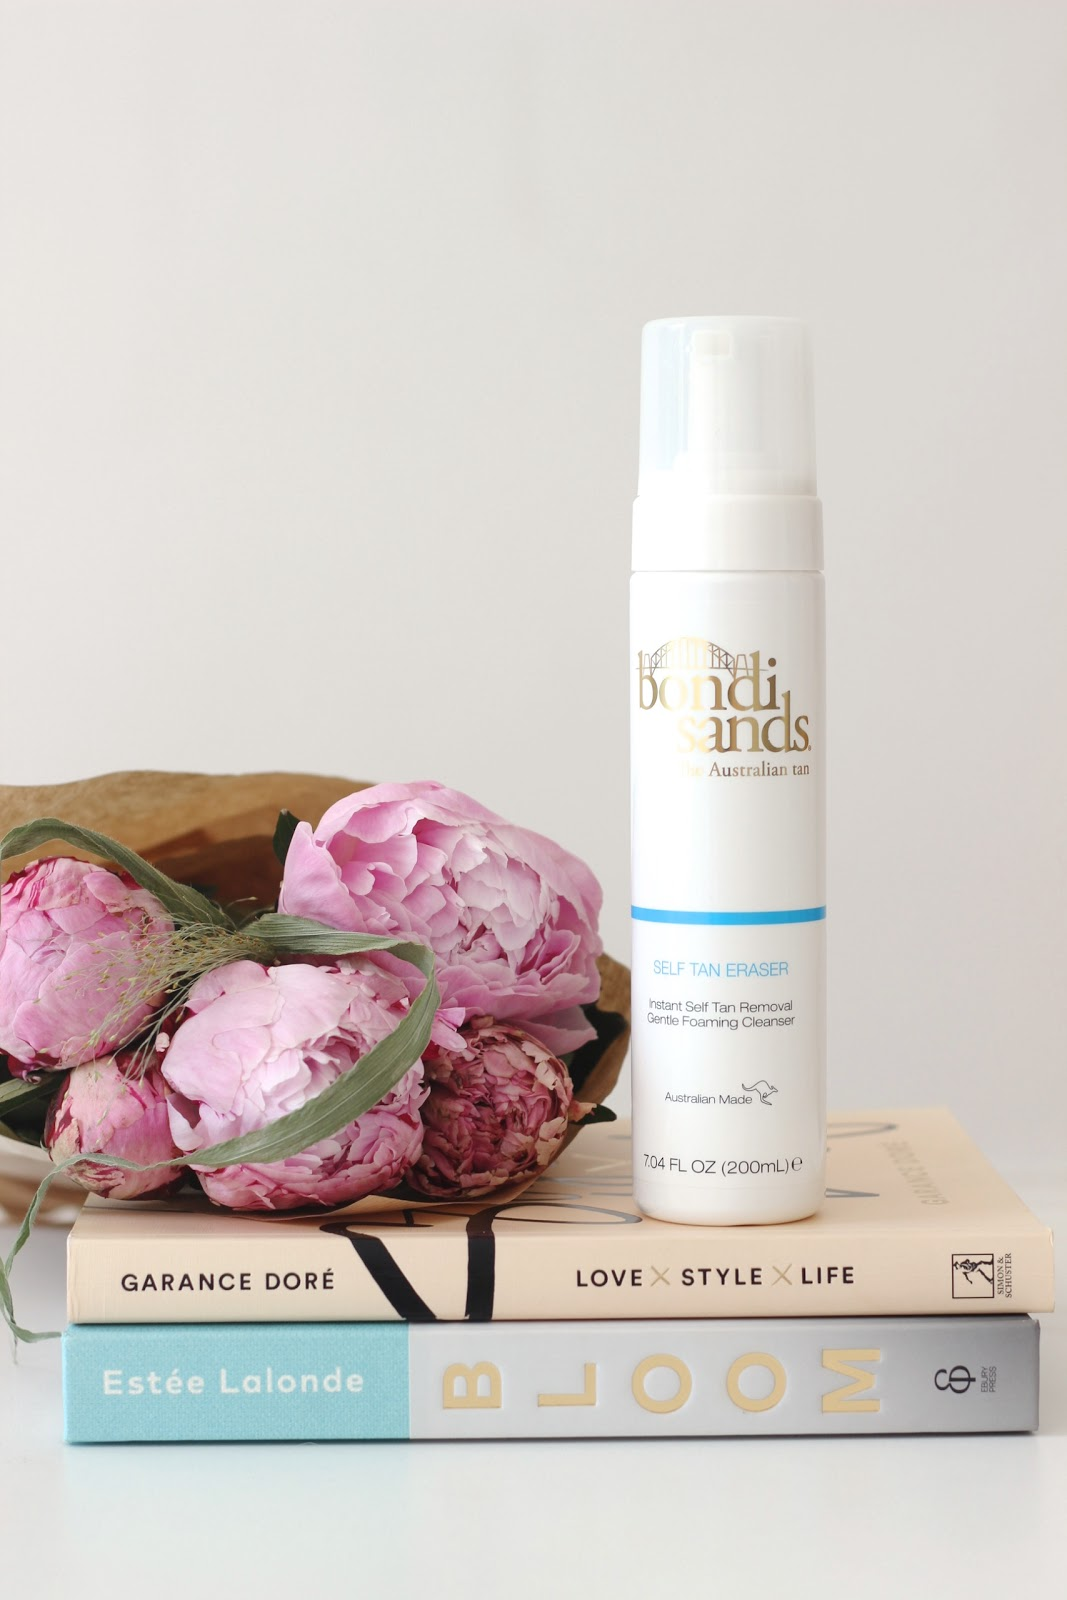 Bondi Sands Self-Tan Eraser: Does it Work?